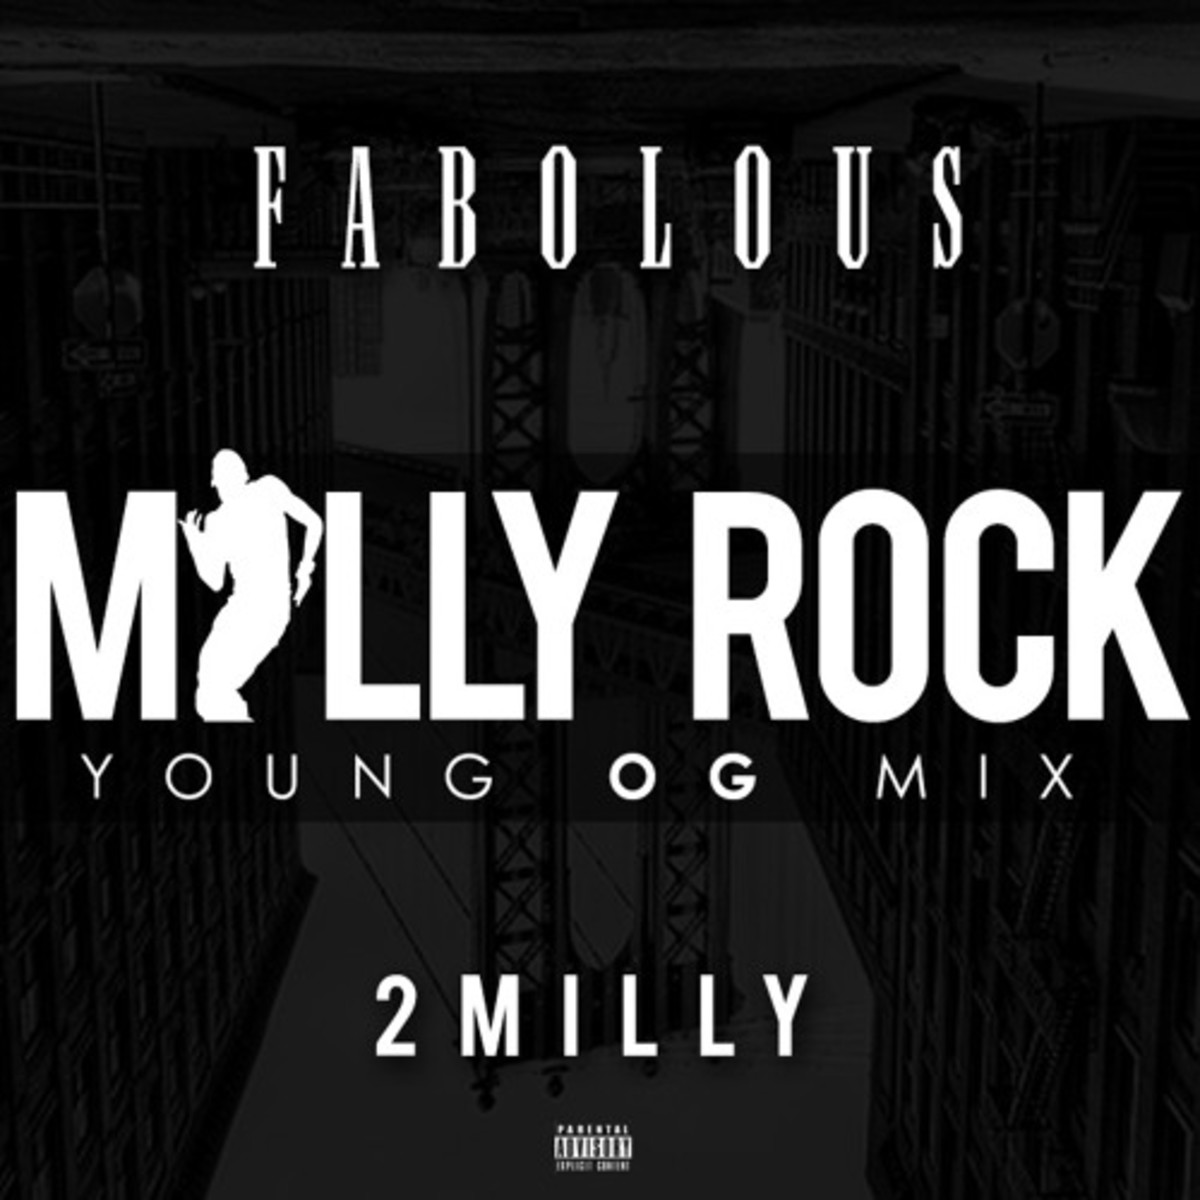 fabolous-milly-rock-remix.jpg